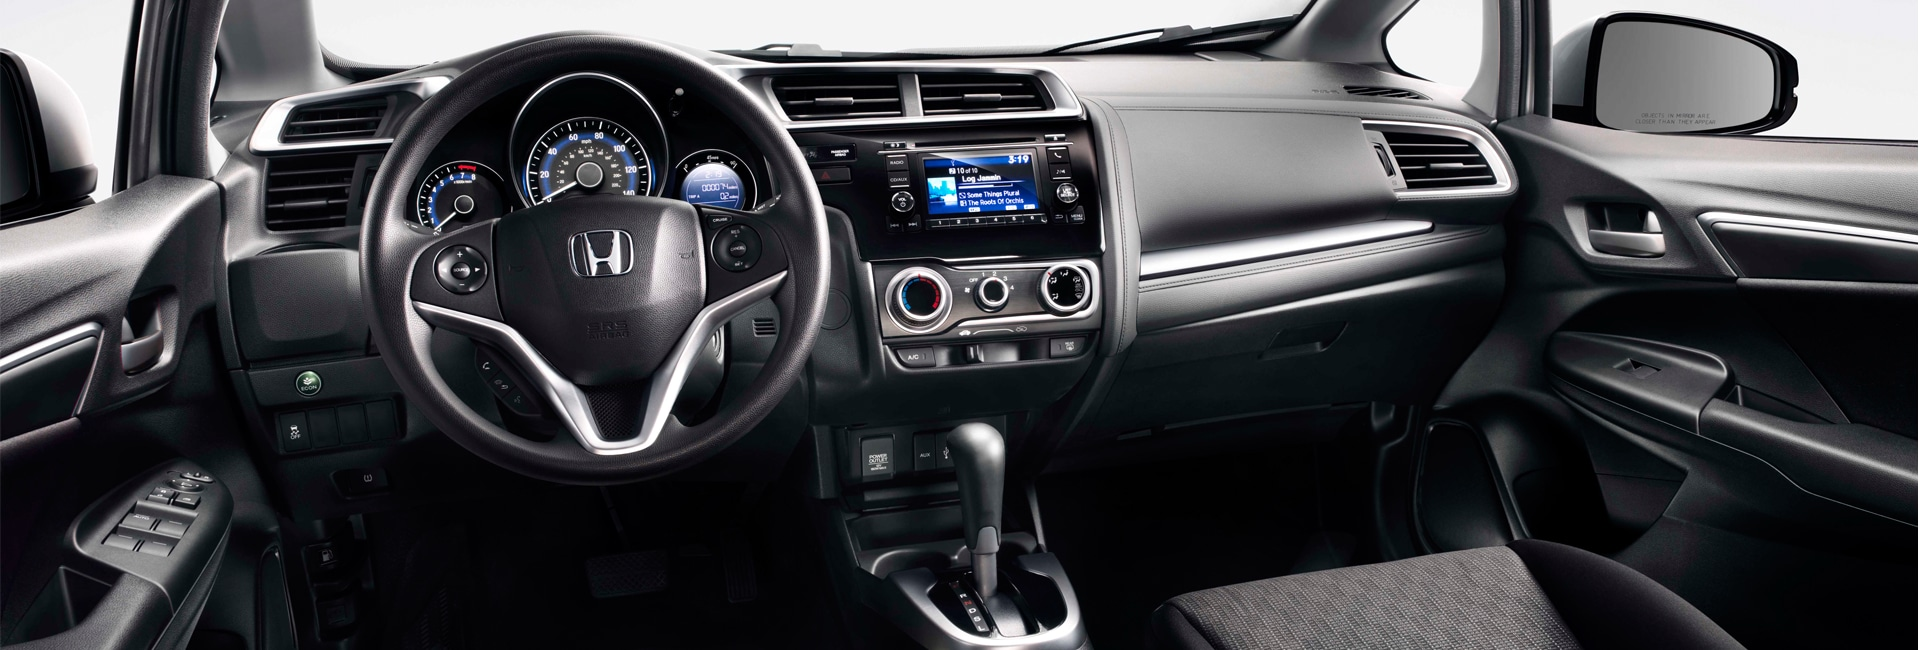 New 2020 Honda Fit Interior Front Seat